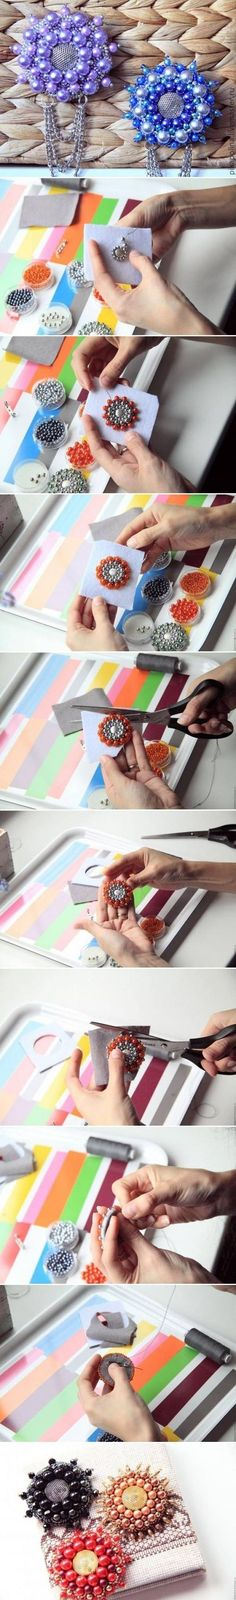 DIY Bead Flower Broach Pictures, Photos, and Images for Facebook, Tumblr, Pinterest, and Twitter